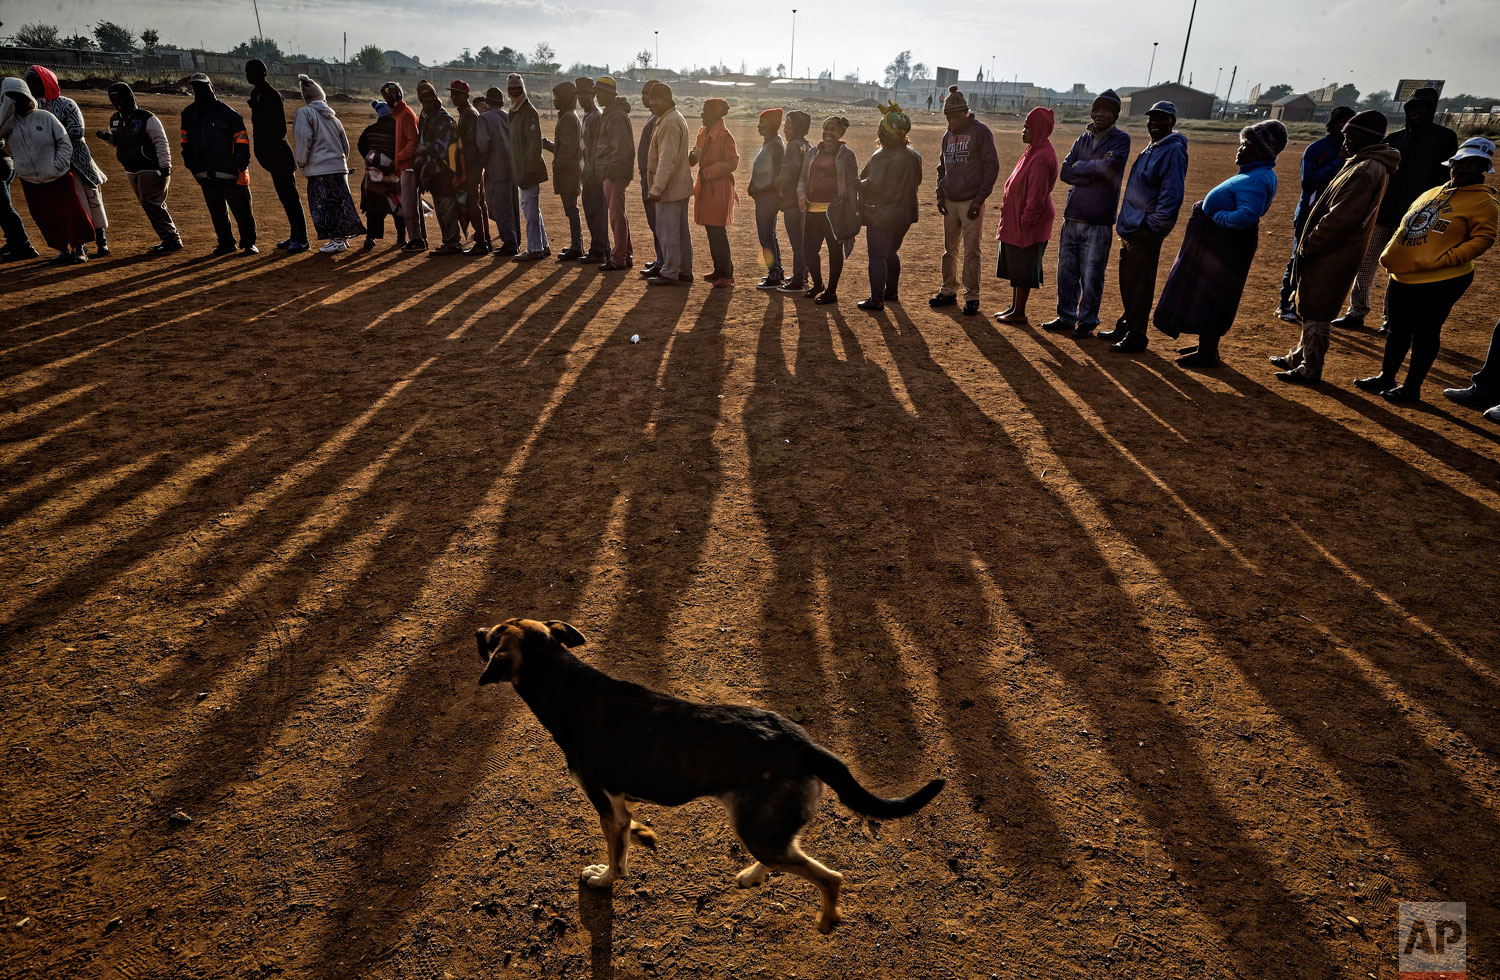 South Africans queue in the early morning sun to cast their votes in the mining settlement of Bekkersdal, west of Johannesburg, in South Africa Wednesday, May 8, 2019. (AP Photo/Ben Curtis)